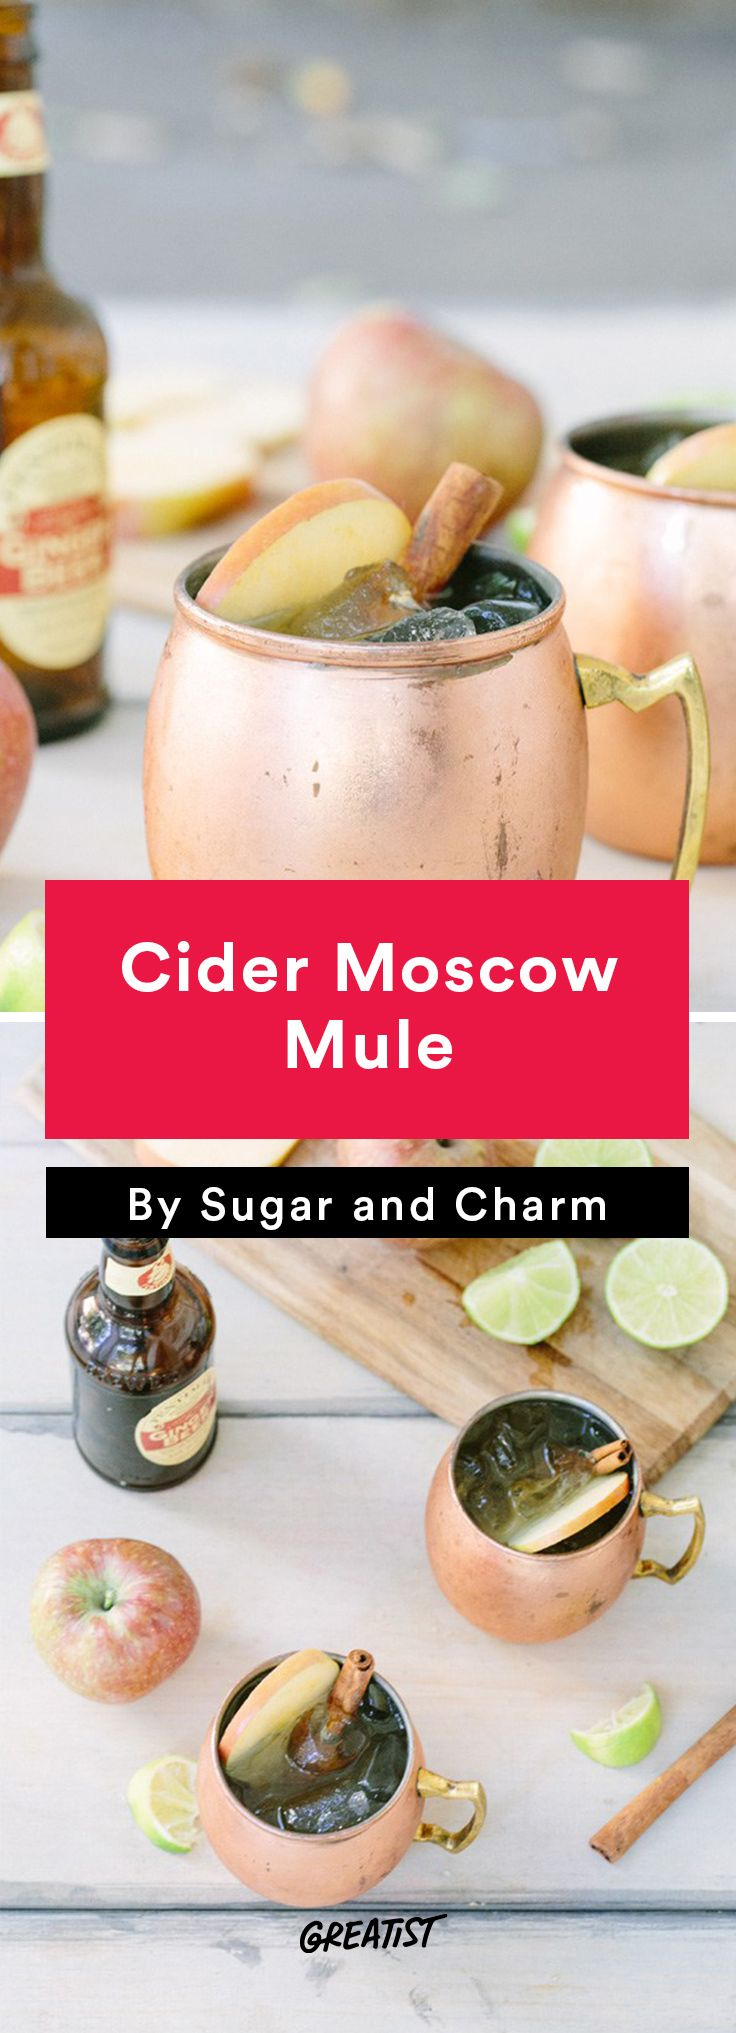 apple cocktails: Cider Moscow Mule